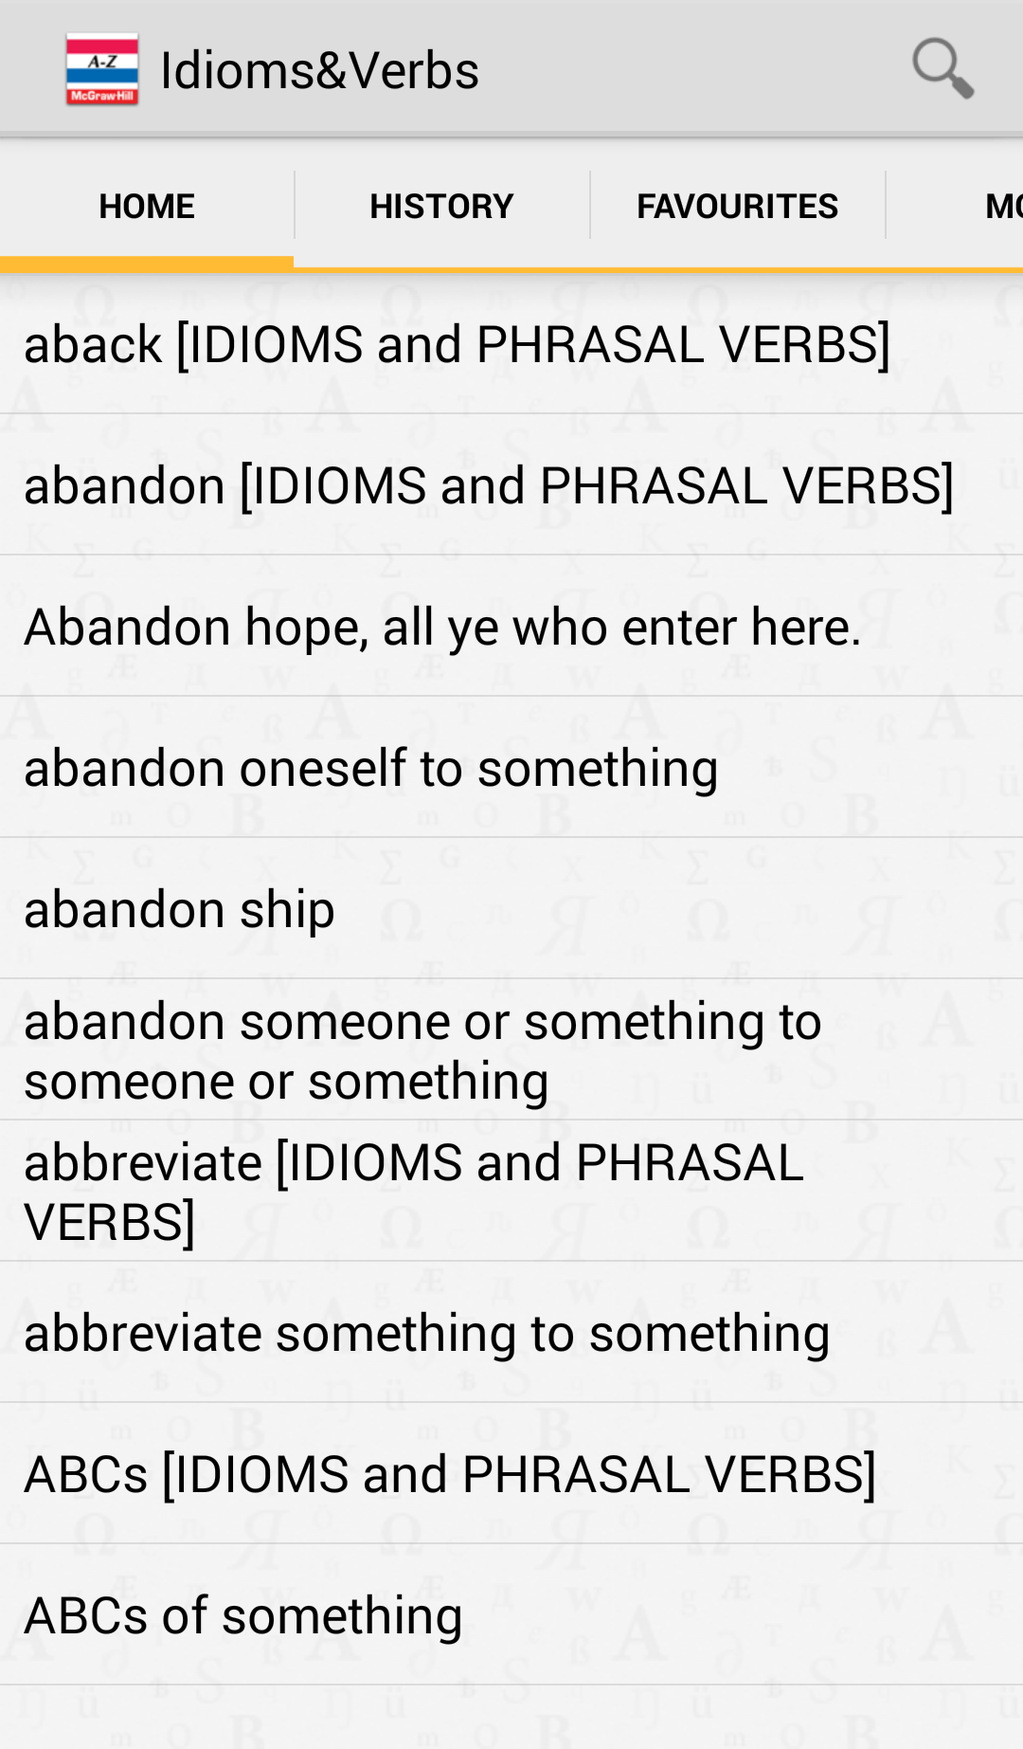 Dictionary of American Idioms and Phrasal Verbs Screenshot